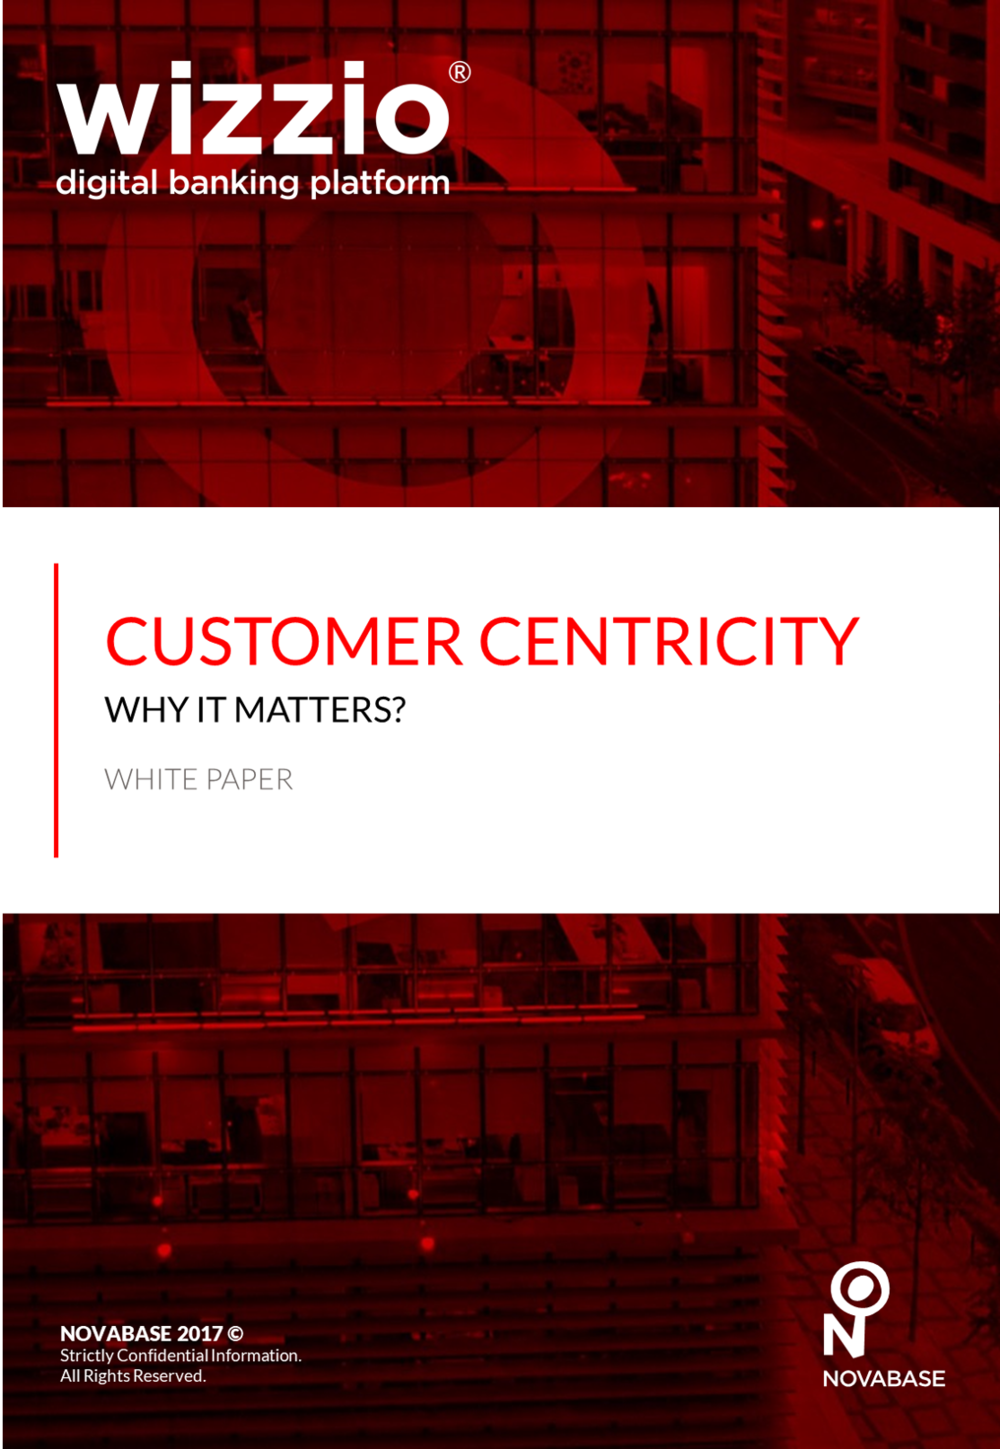 CUSTOMER CENTRICITY_why it matters.png